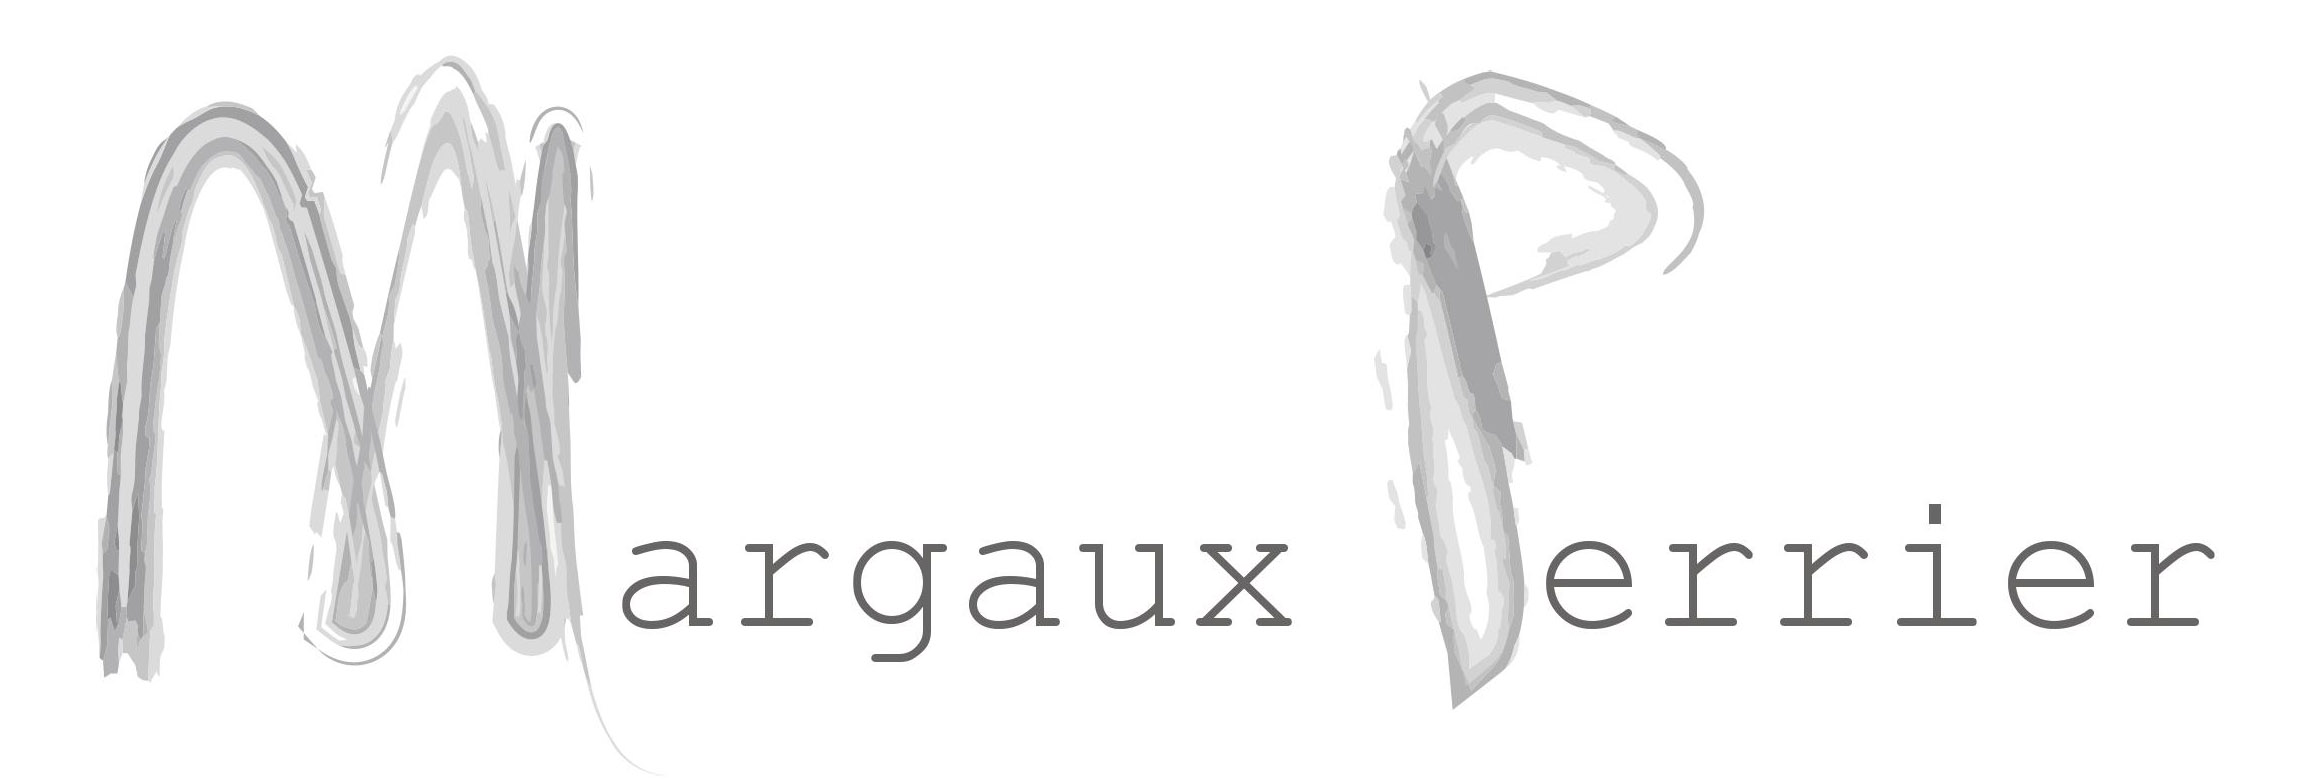 MARGAUX PERRIER's Signature